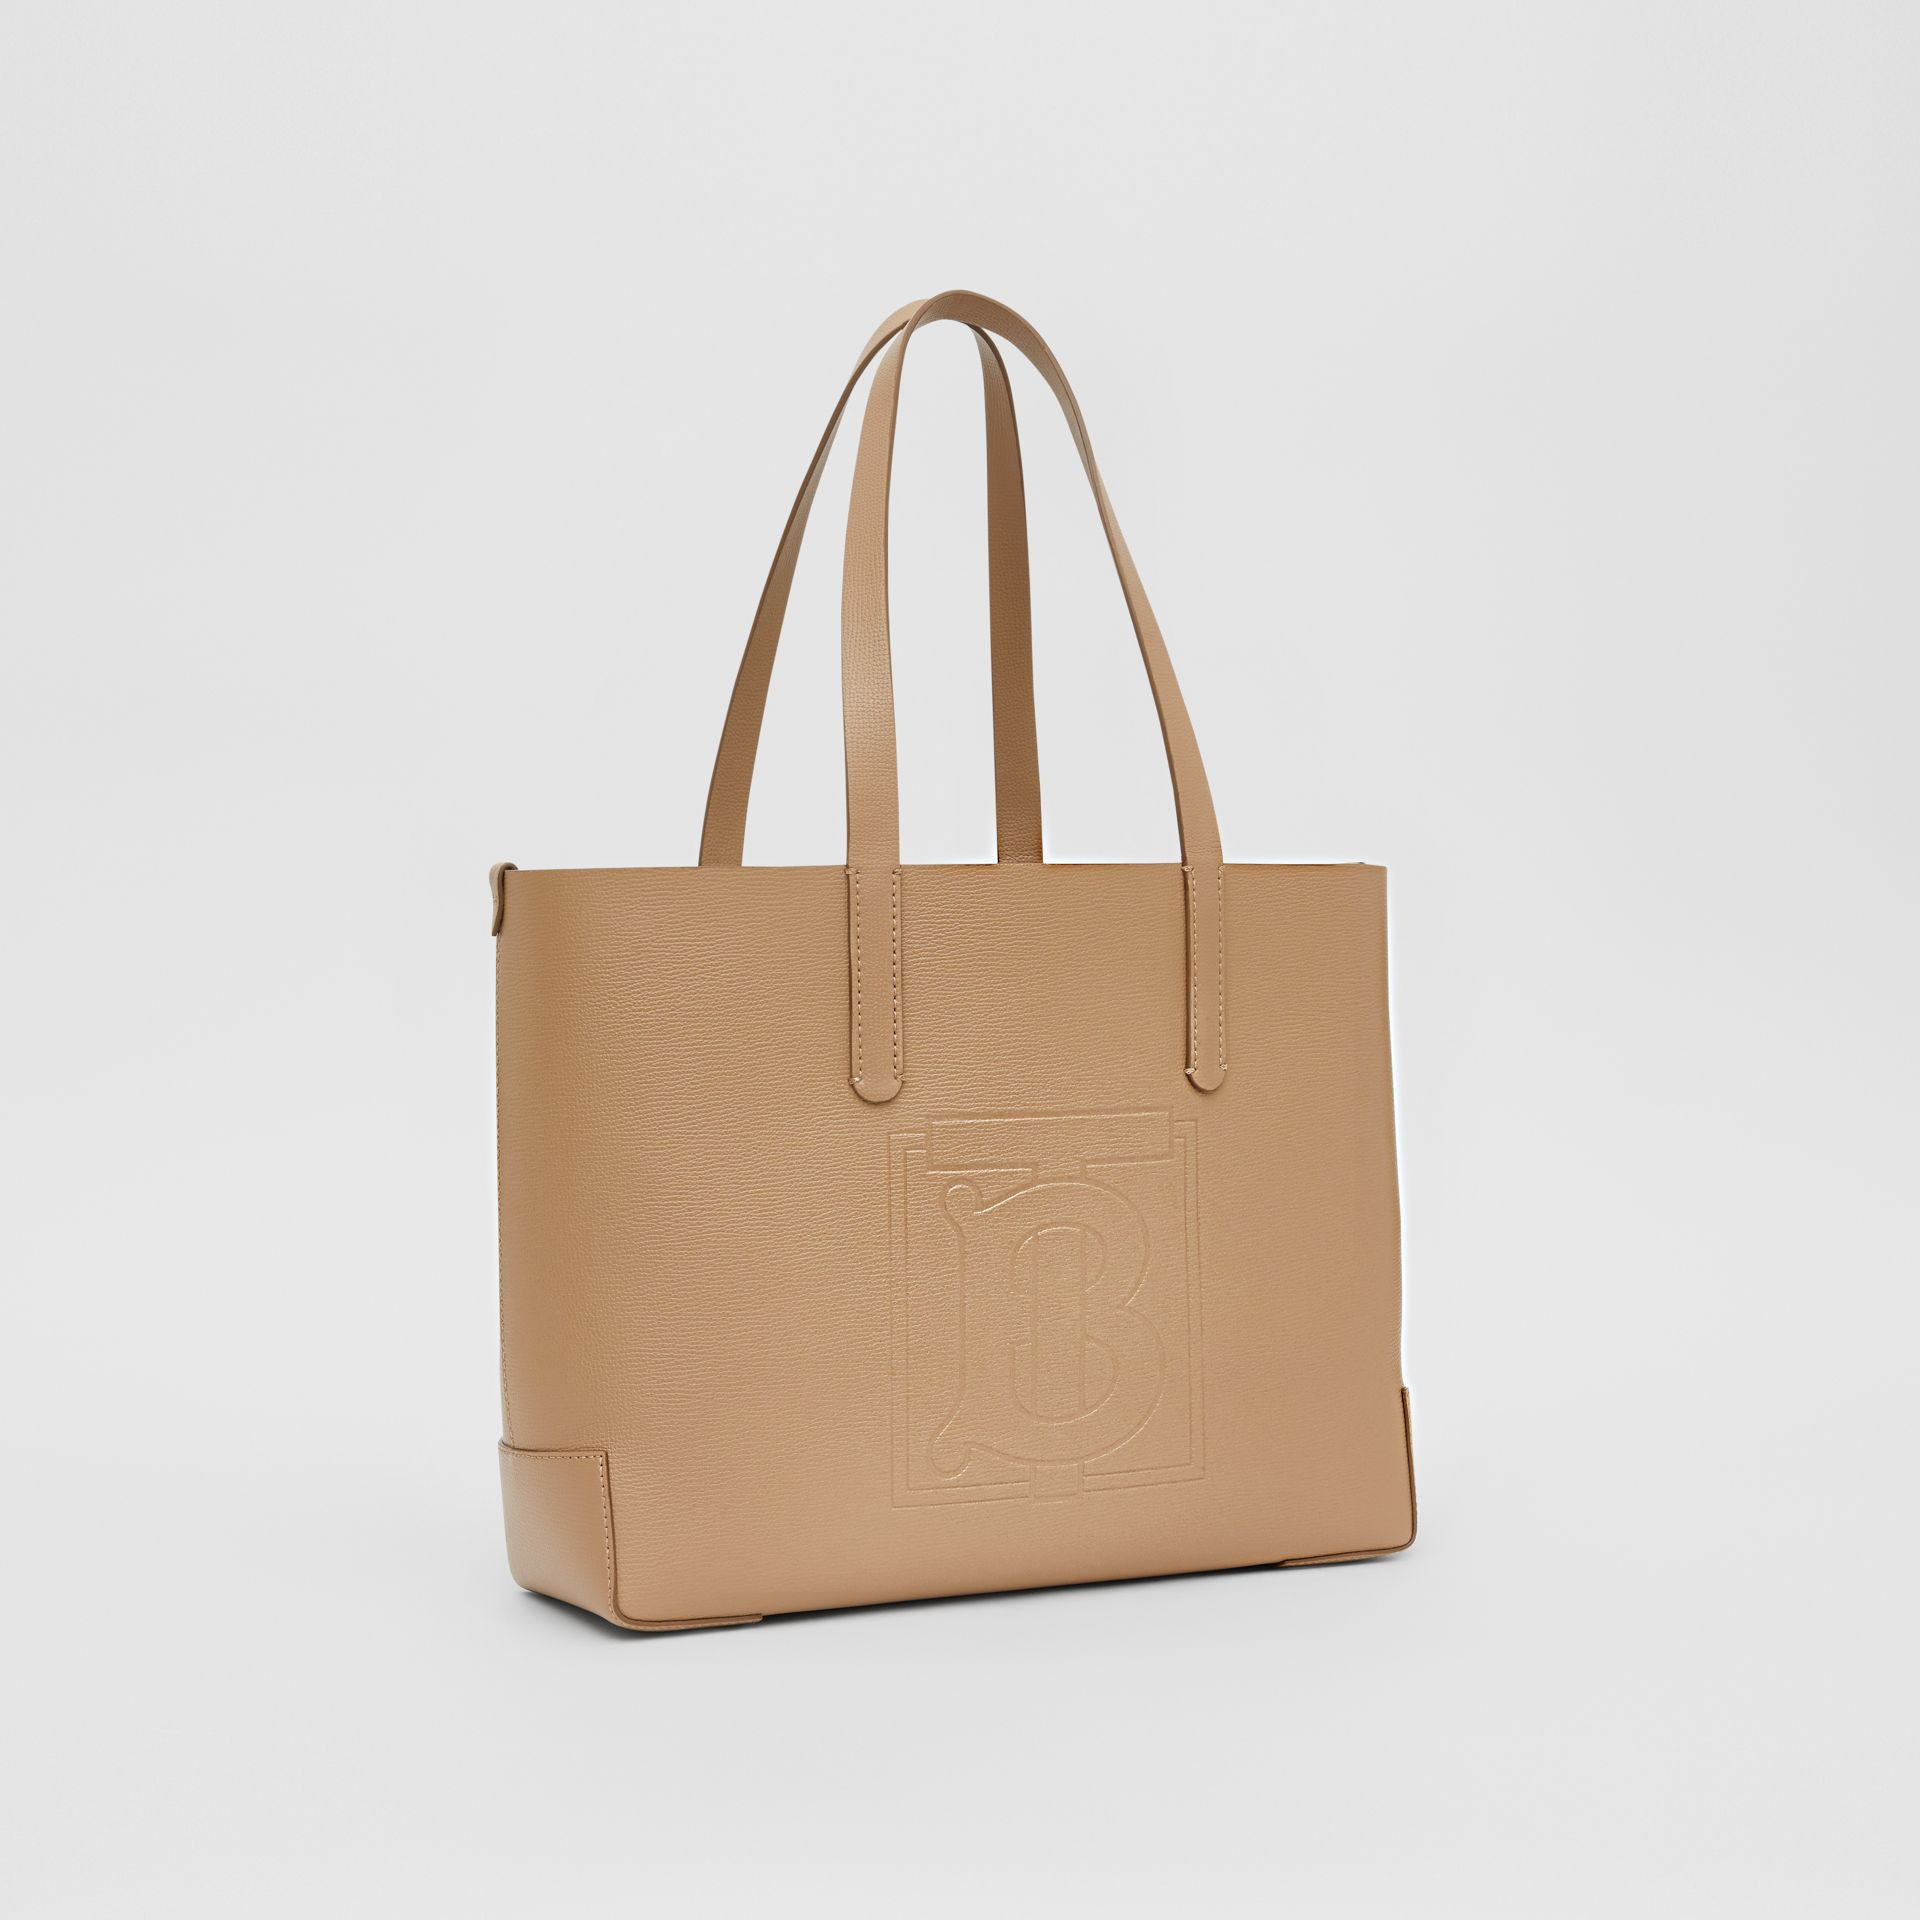 Embossed Monogram Motif Leather Tote in Camel - Women | Burberry Canada - gallery image 8